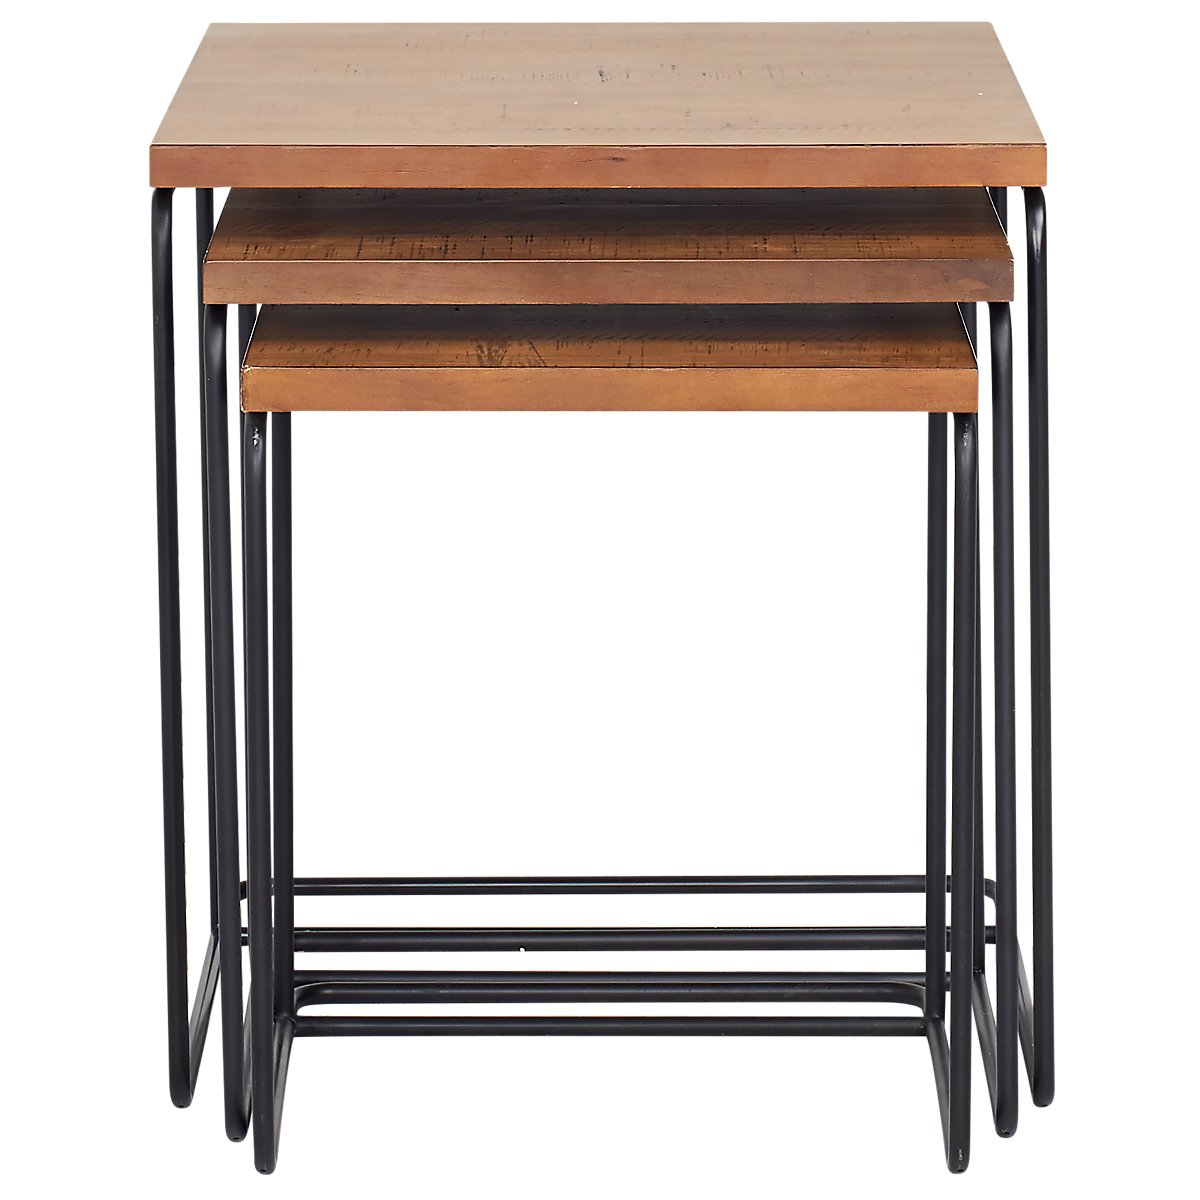 Traverse Light Tone Nesting Tables Bedroom Nightstands City Furniture